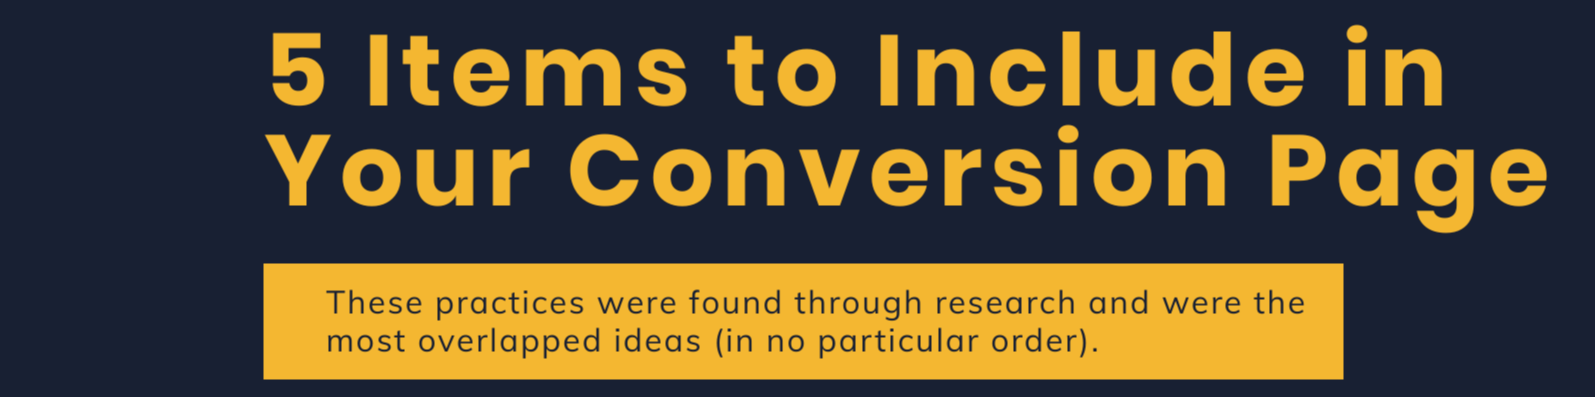 Conversion Page Infographic-1-1-1